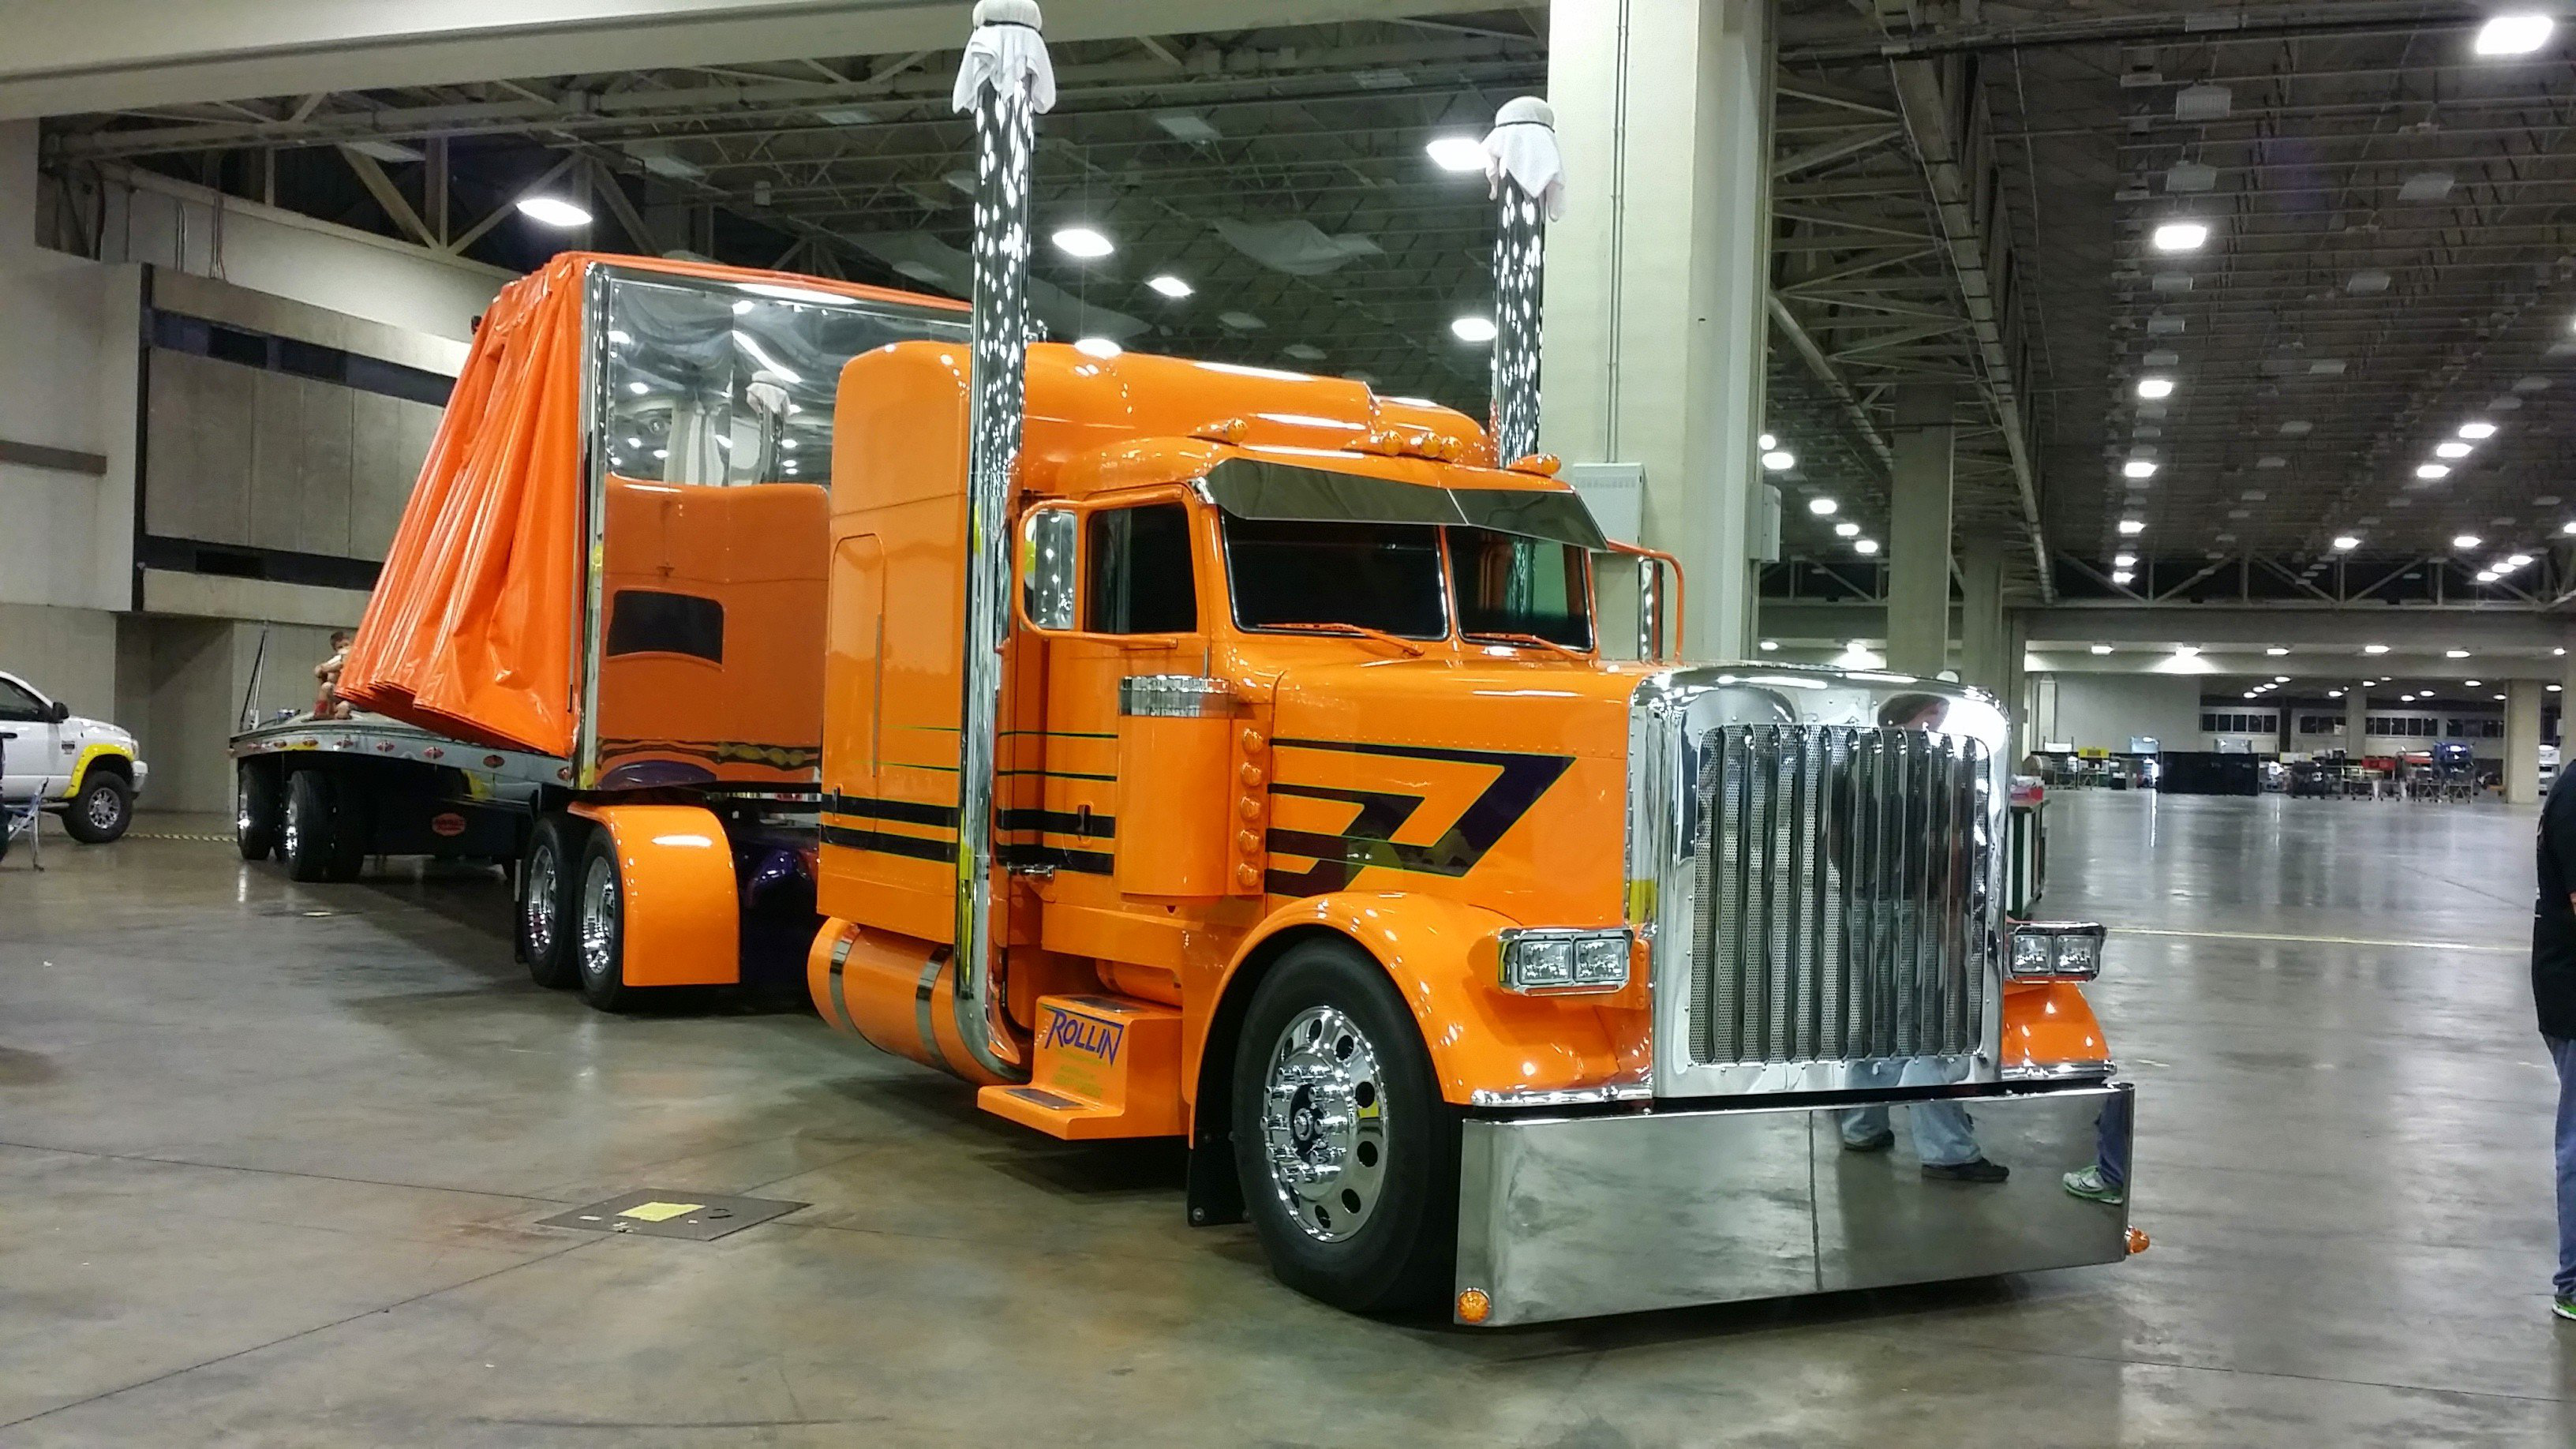 Vinnio Diorio's 2013 Peterbilt 379 and matching Mac trailer are looking to defend their Pride & Polish championship from 2013 in the Limited-Mileage Combo category.